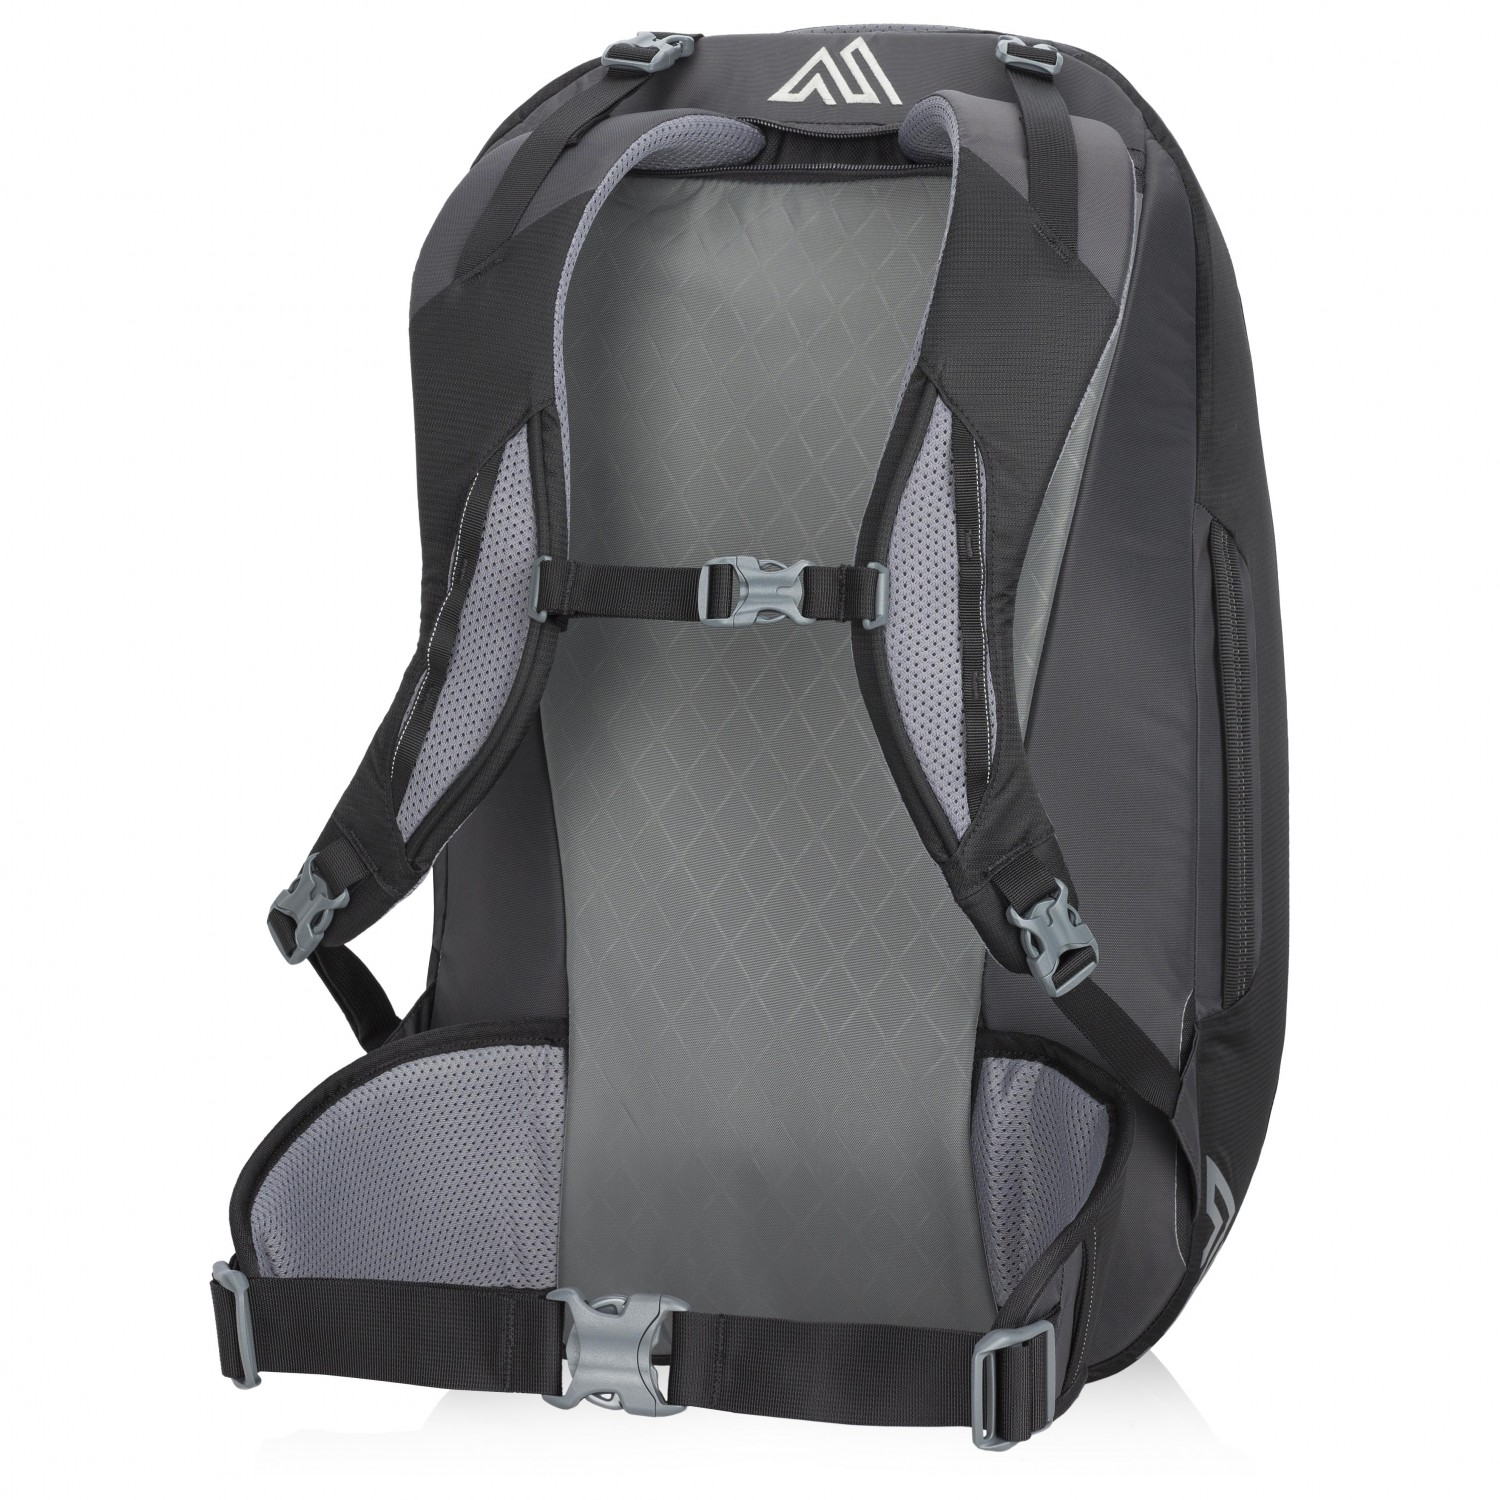 Gregory Praxus 45 - Travel backpack   Free EU Delivery   Bergfreunde.eu b46b361cb7